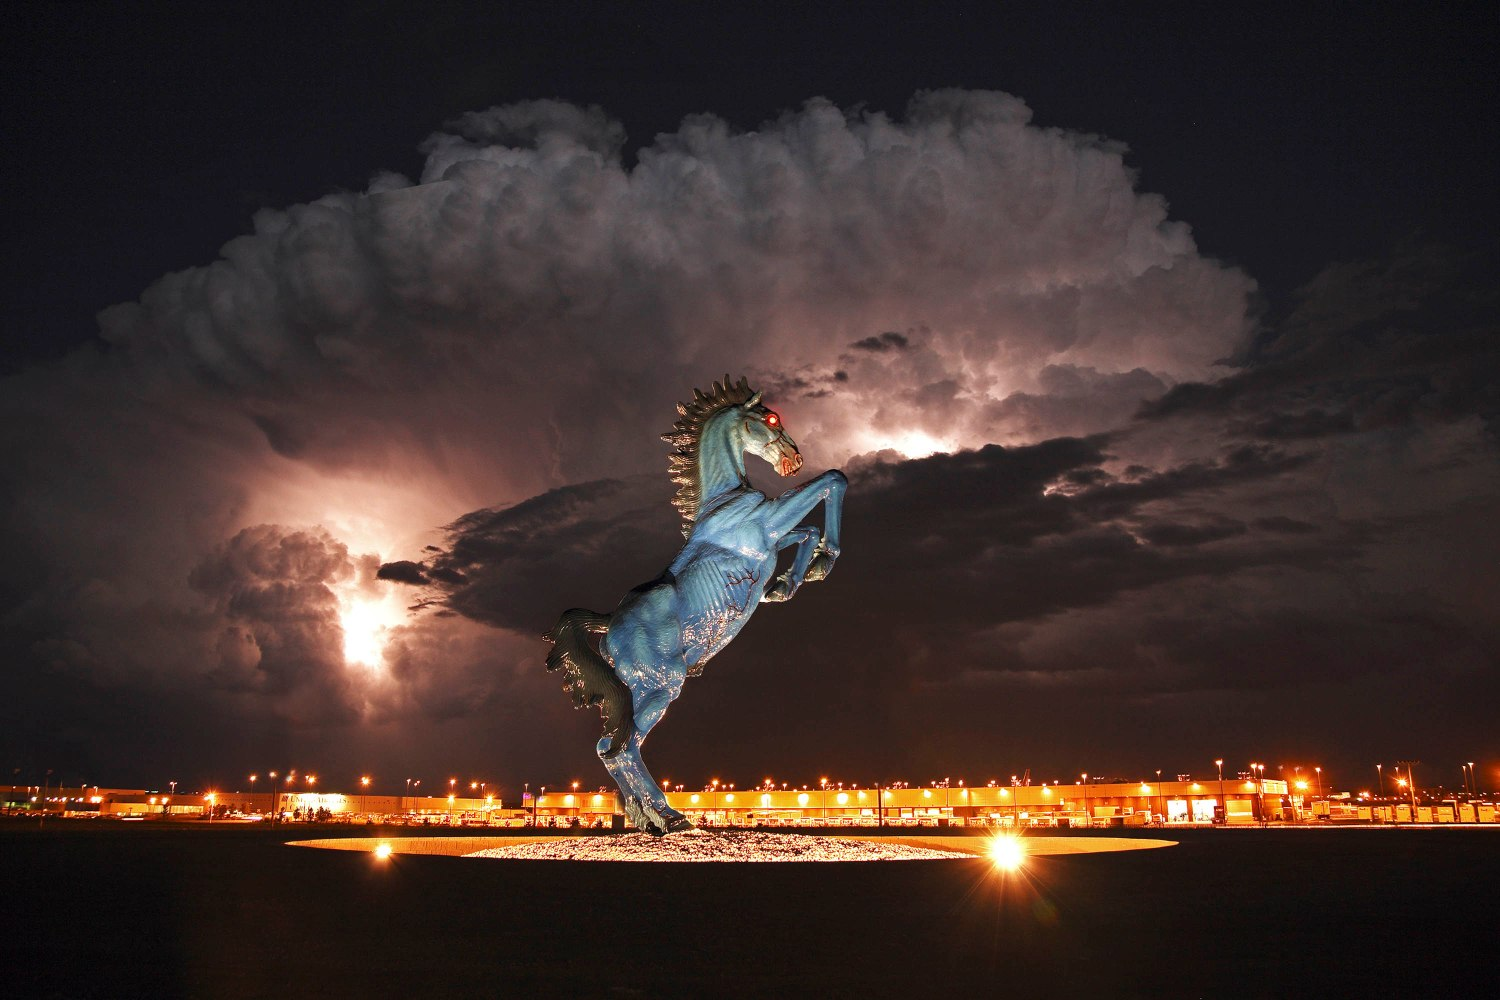 Mustang Statue by Luis Jimenez at Night. Artwork (c) 2009, The Estate of Luis Jimenez A.R.S.